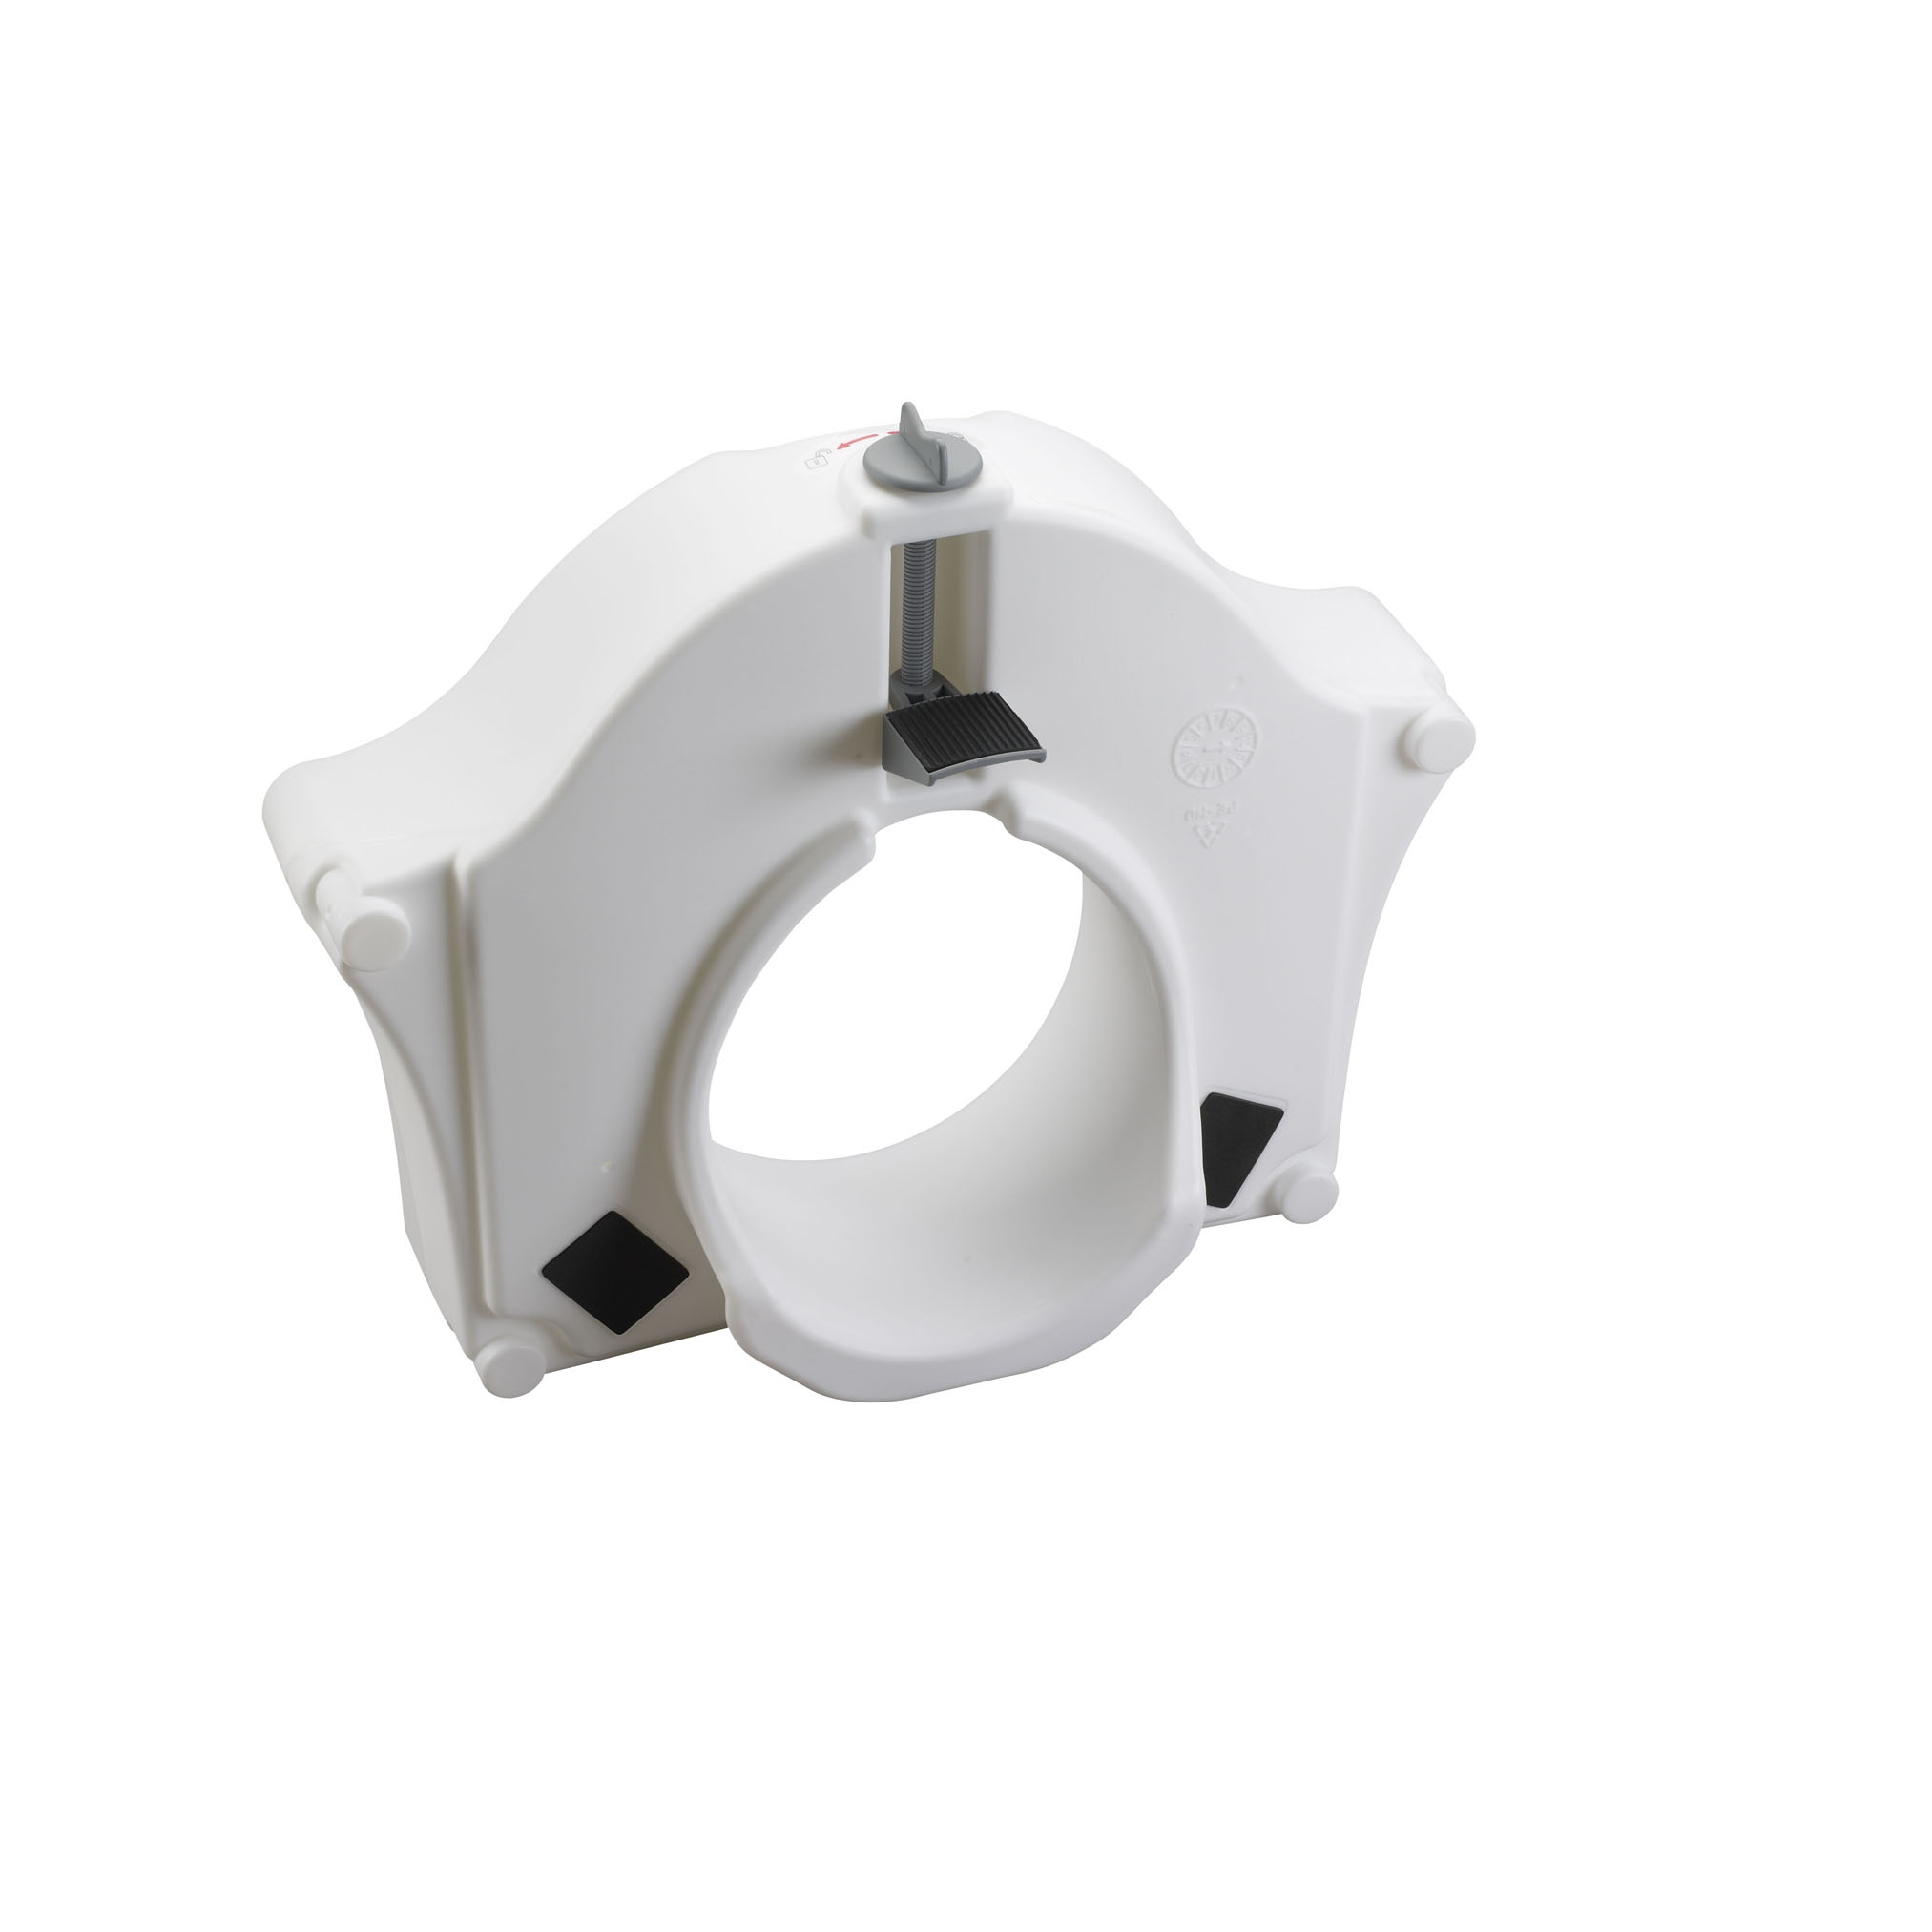 elevated-toilet-seat-without-arms-rtl12026-drive-medical-3.jpg